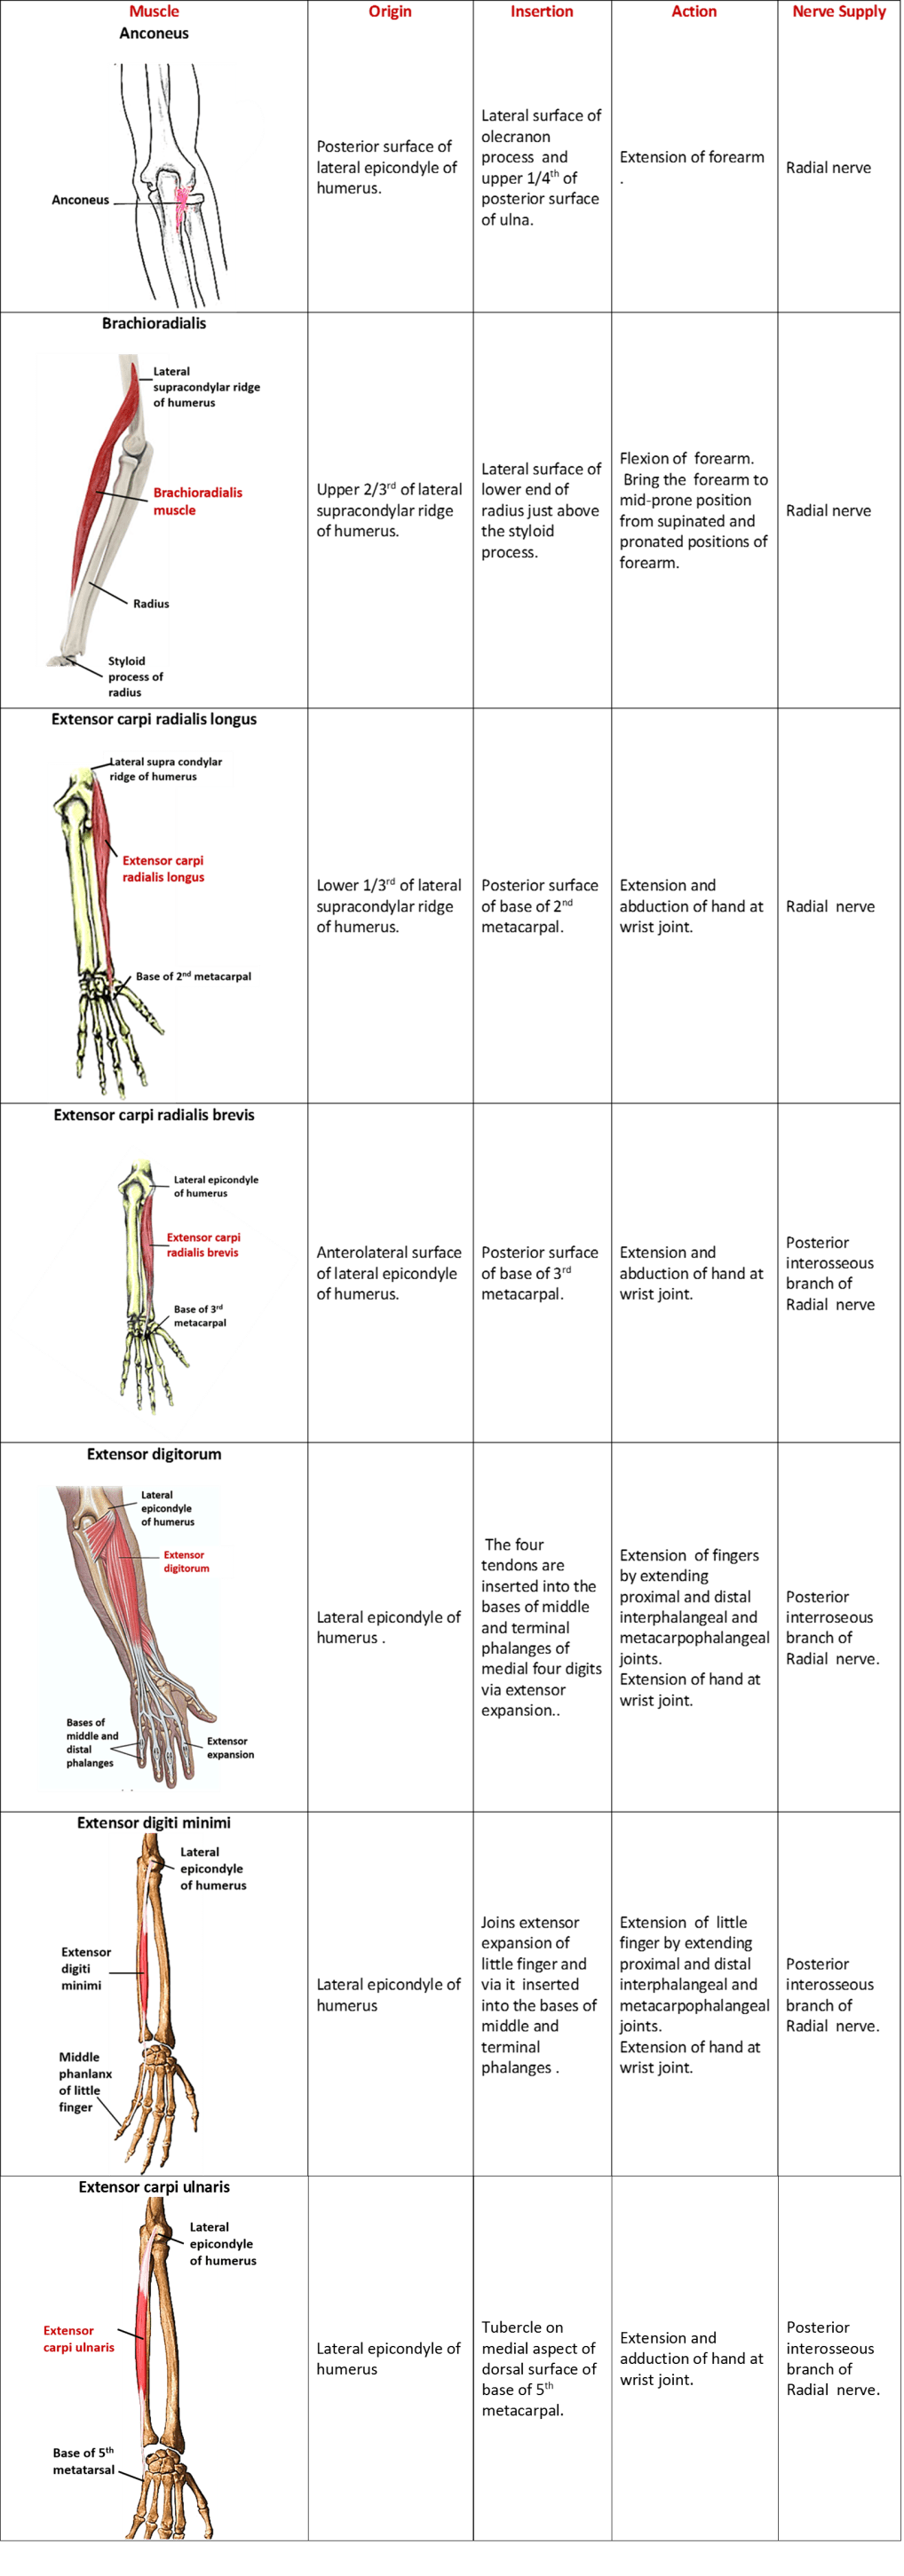 superficial extensor muscles of forearm